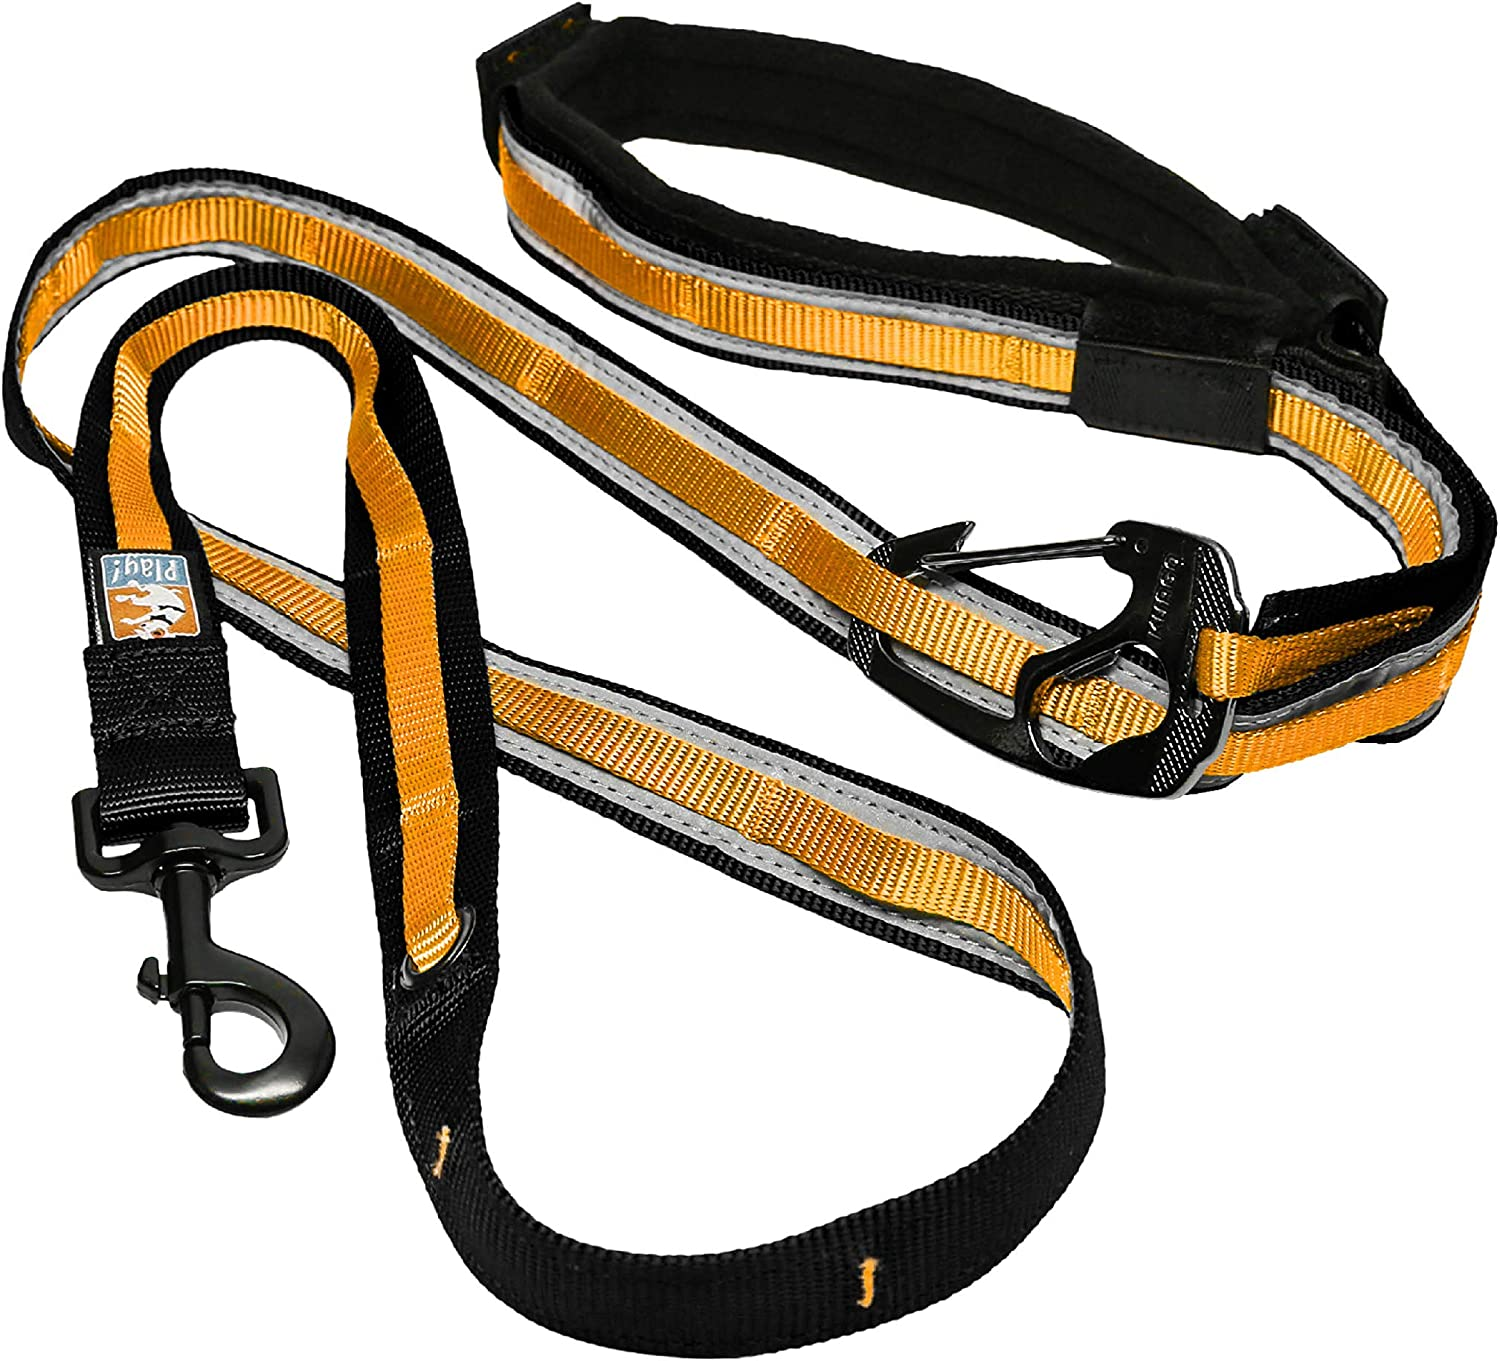 Max 87% OFF Long-awaited Kurgo 6 in 1 Quantum Leash B Running Free Dogs for Hands